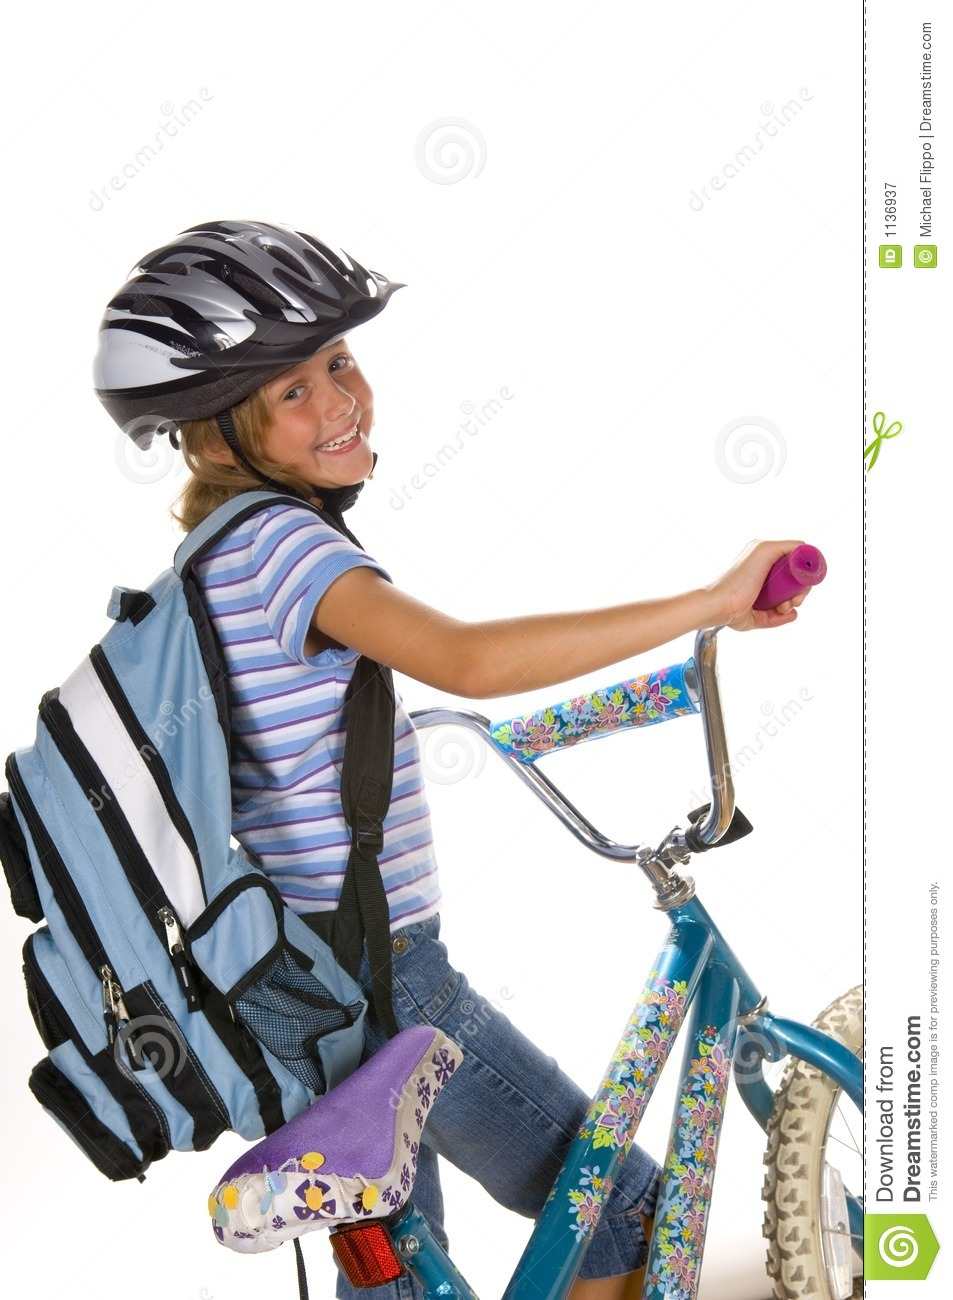 Young Girl Riding Bike